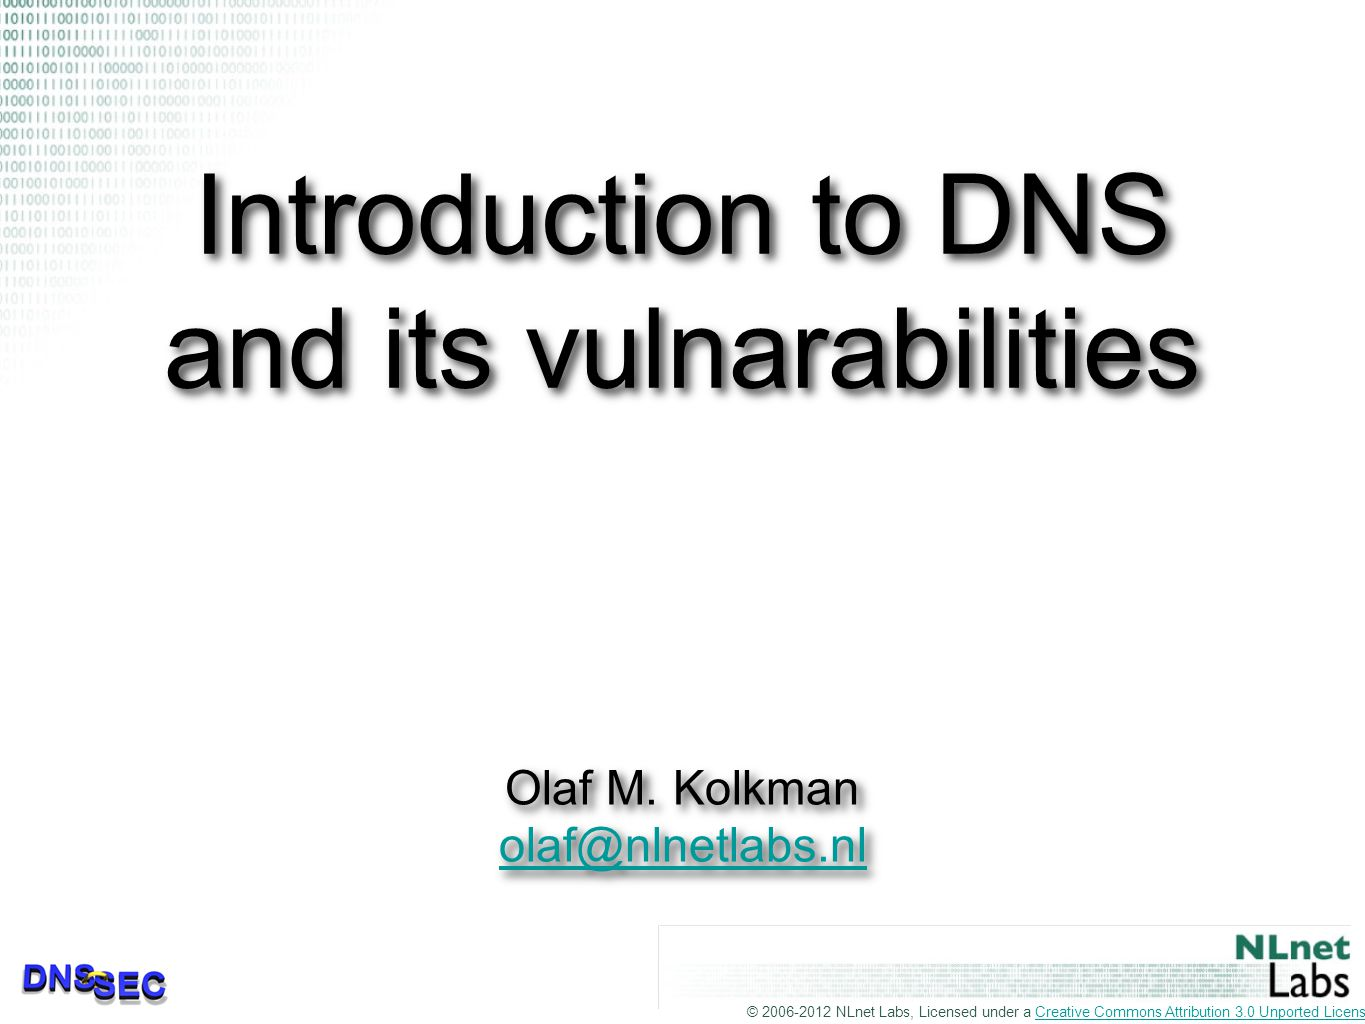 © 2006-2012 NLnet Labs, Licensed under a Creative Commons Attribution 3.0 Unported License.Creative Commons Attribution 3.0 Unported License Introduction to DNS and its vulnarabilities Olaf M.